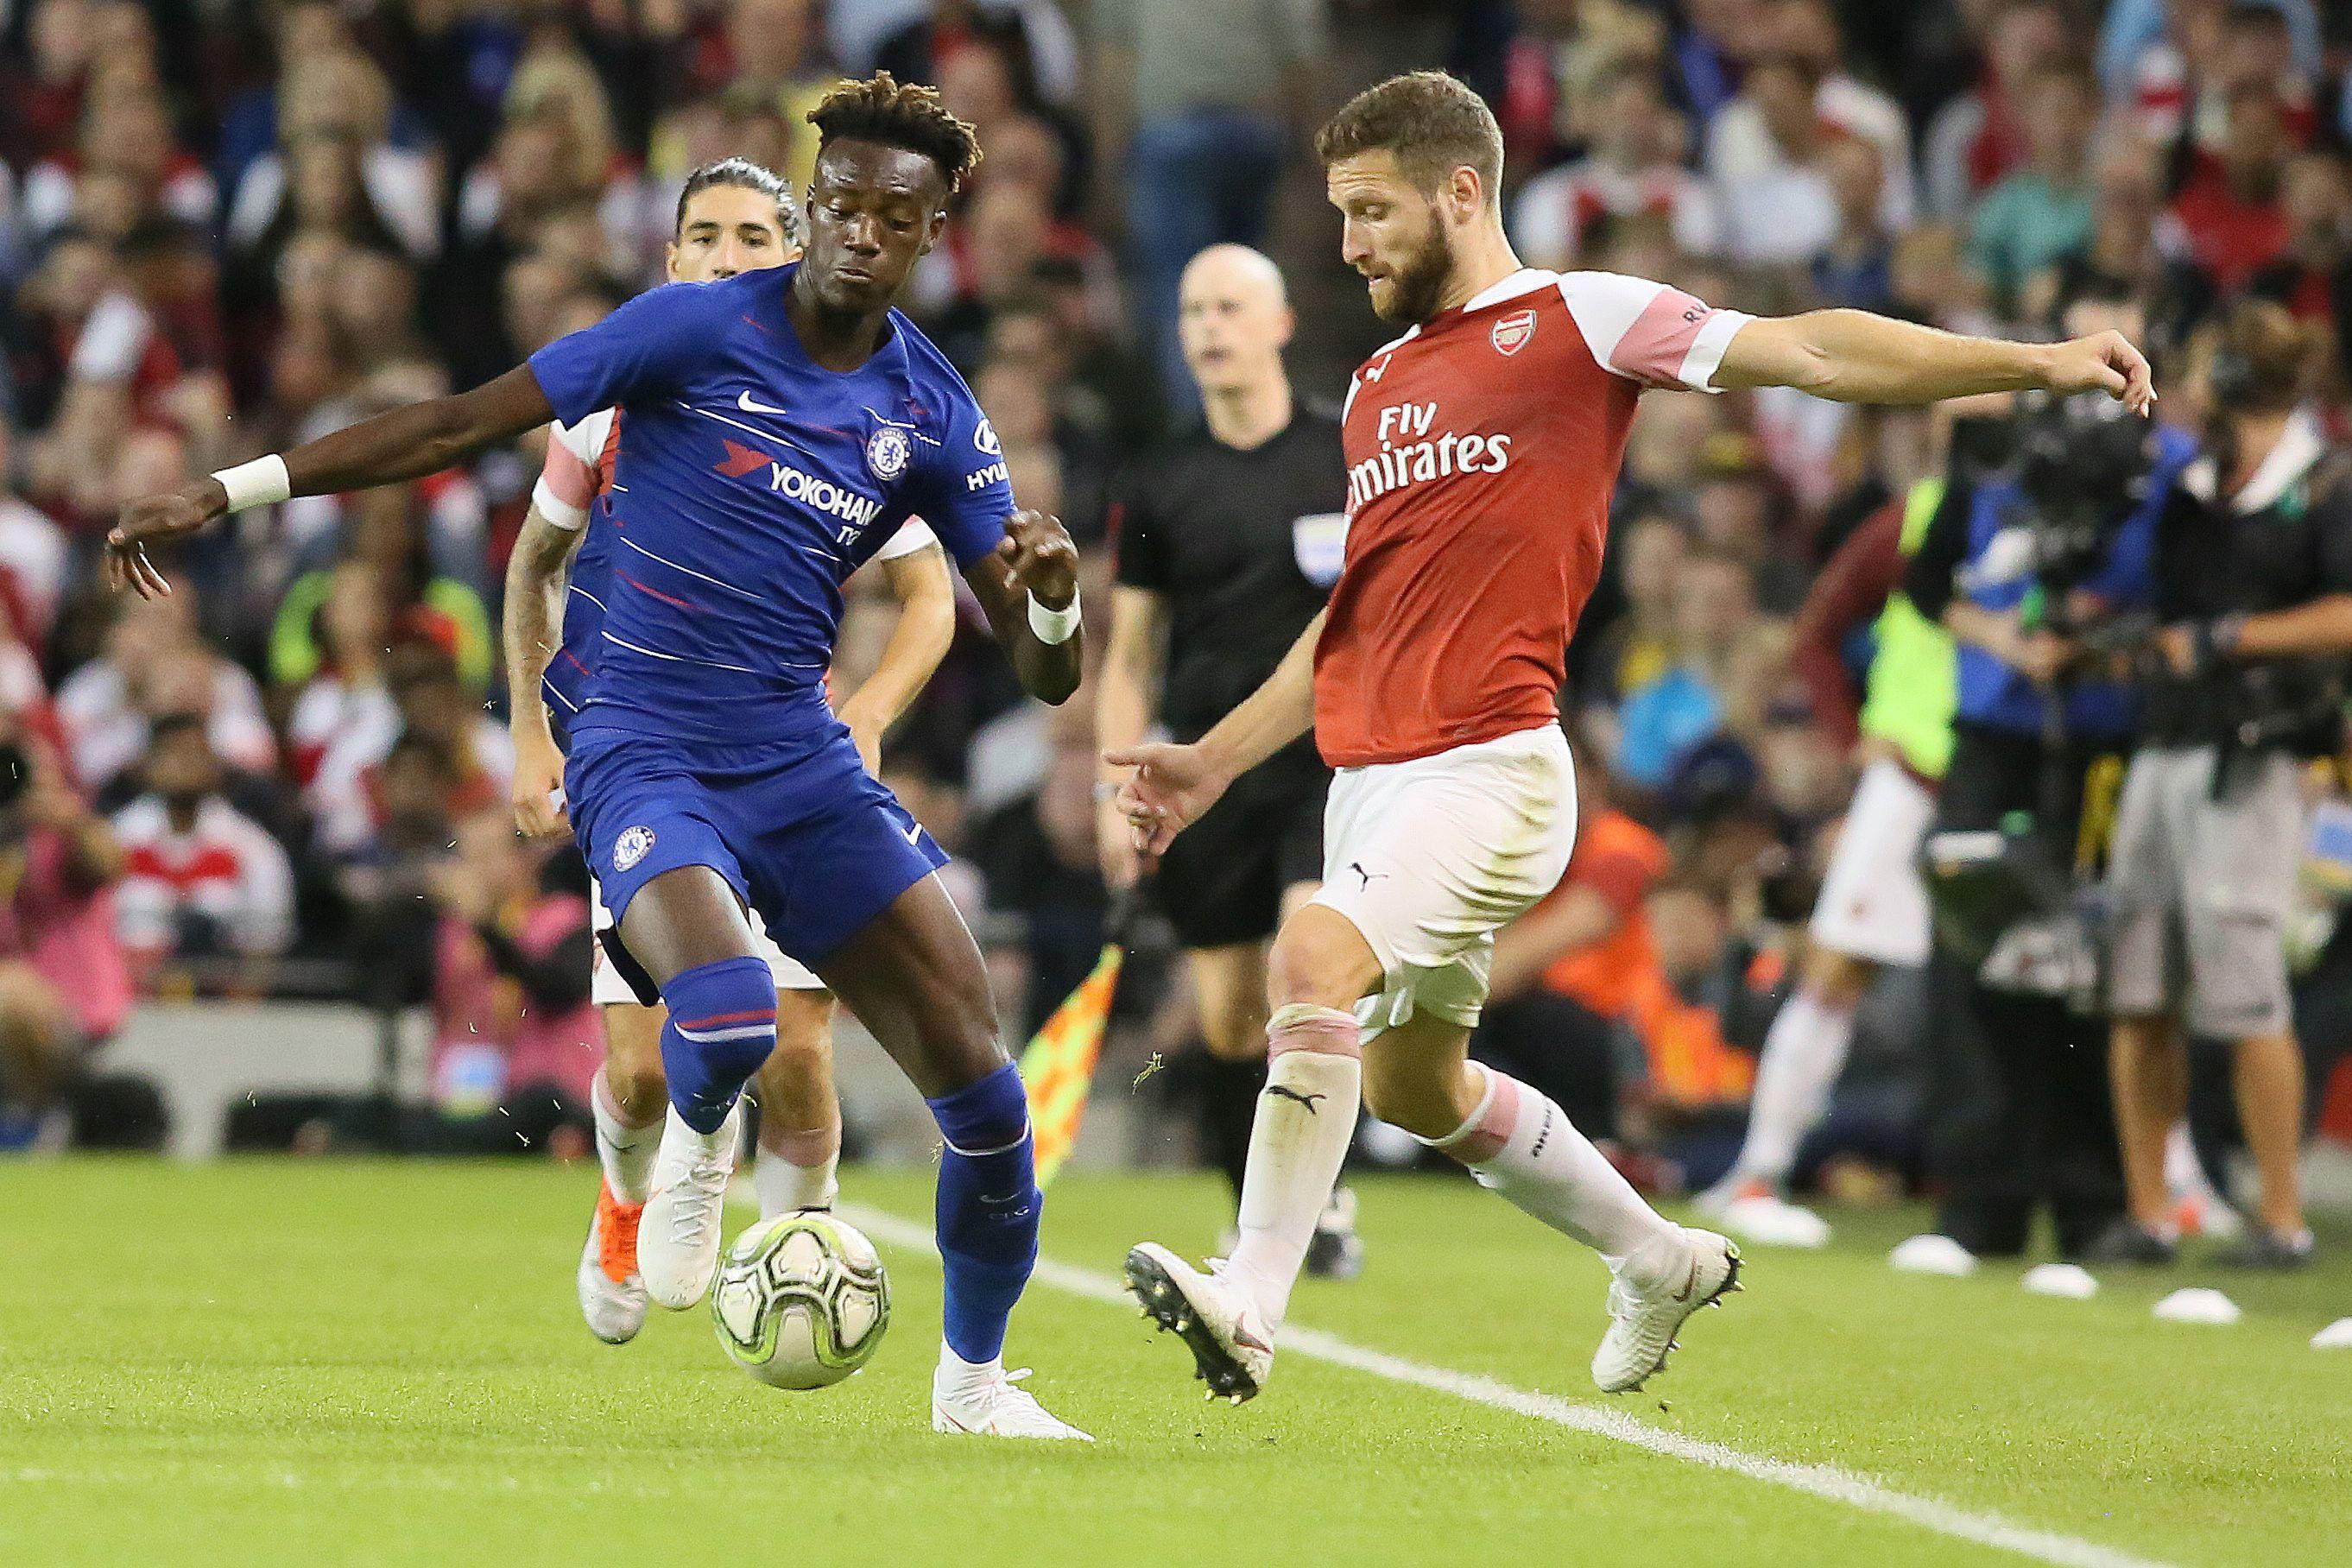 Hudson-Odoi caught the eye for many onlooking Chelsea fans against their London rivals